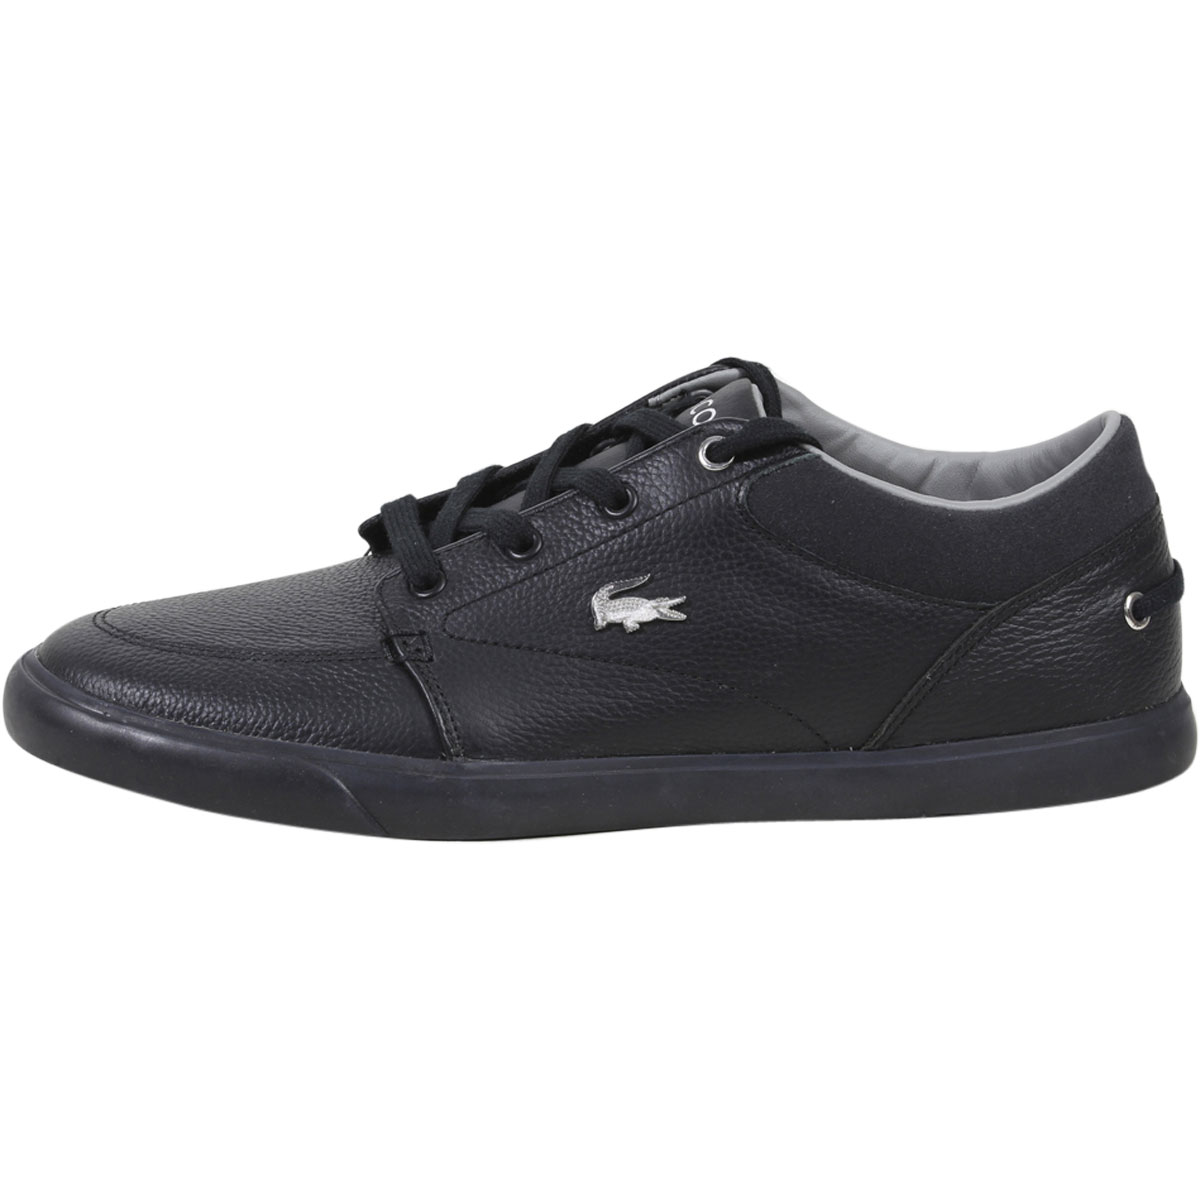 Lacoste-Men-039-s-Bayliss-118-Sneakers-Shoes thumbnail 10